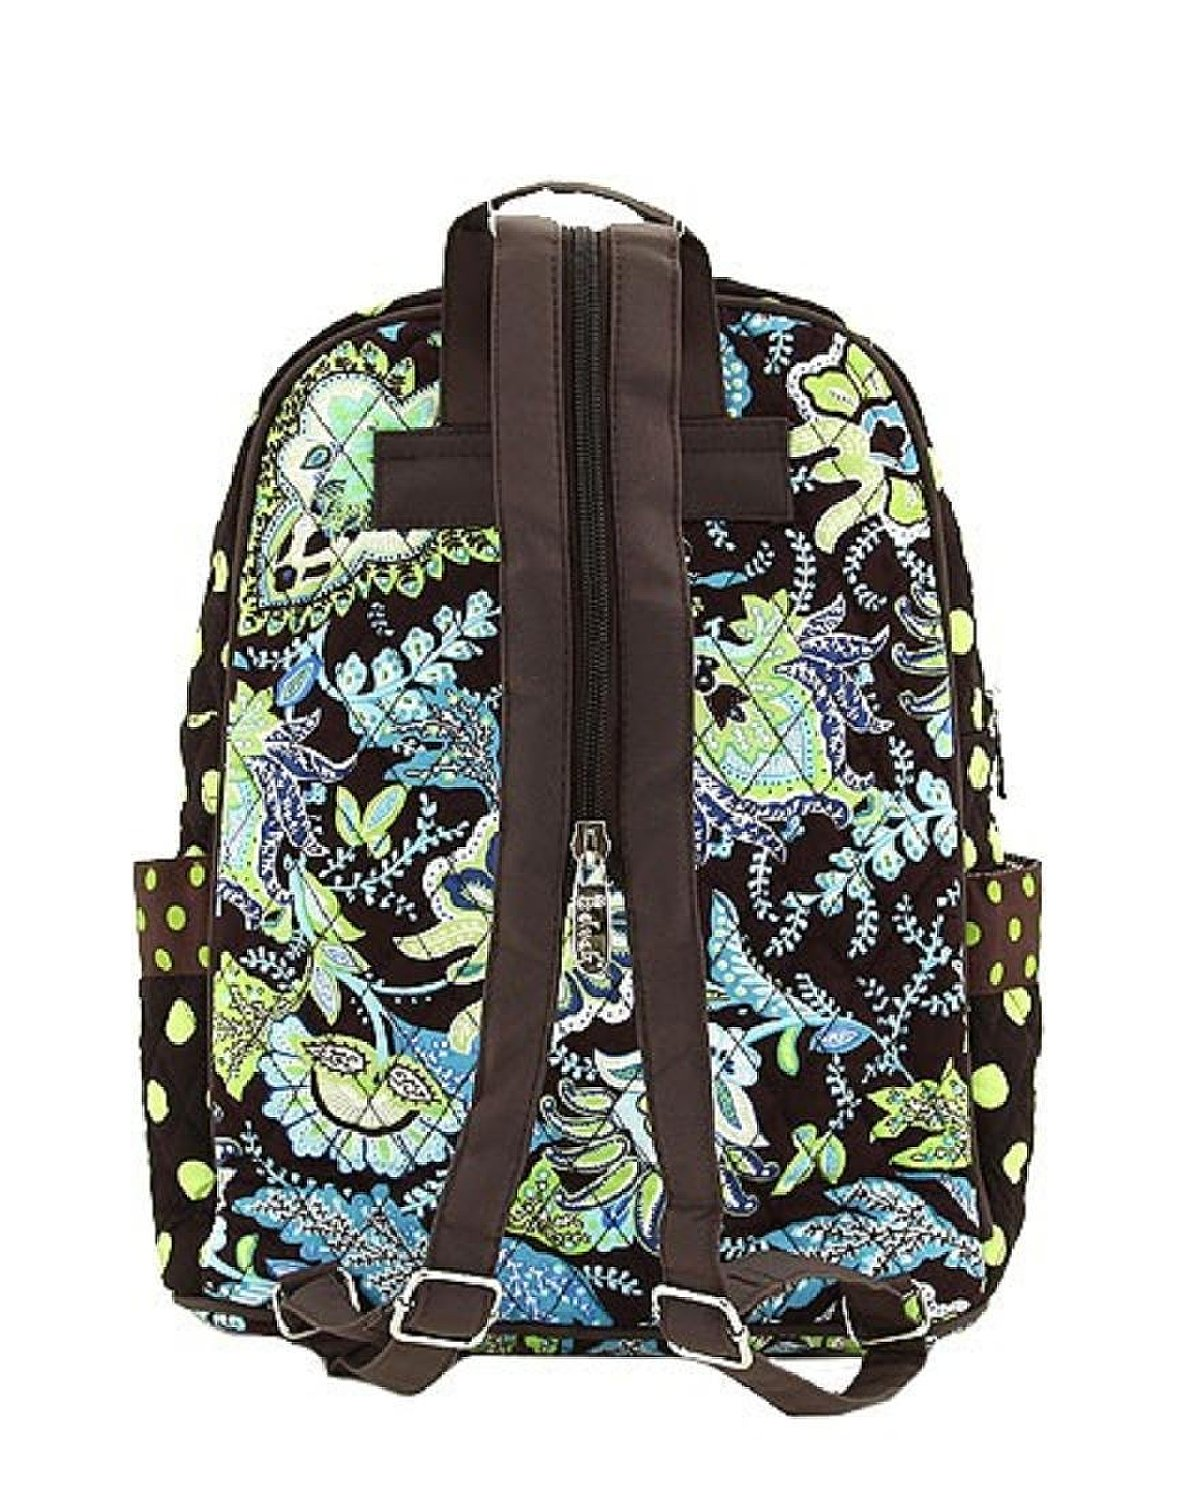 belvah women u0026 39 s paisley quilted floral backpack book bag school class travel